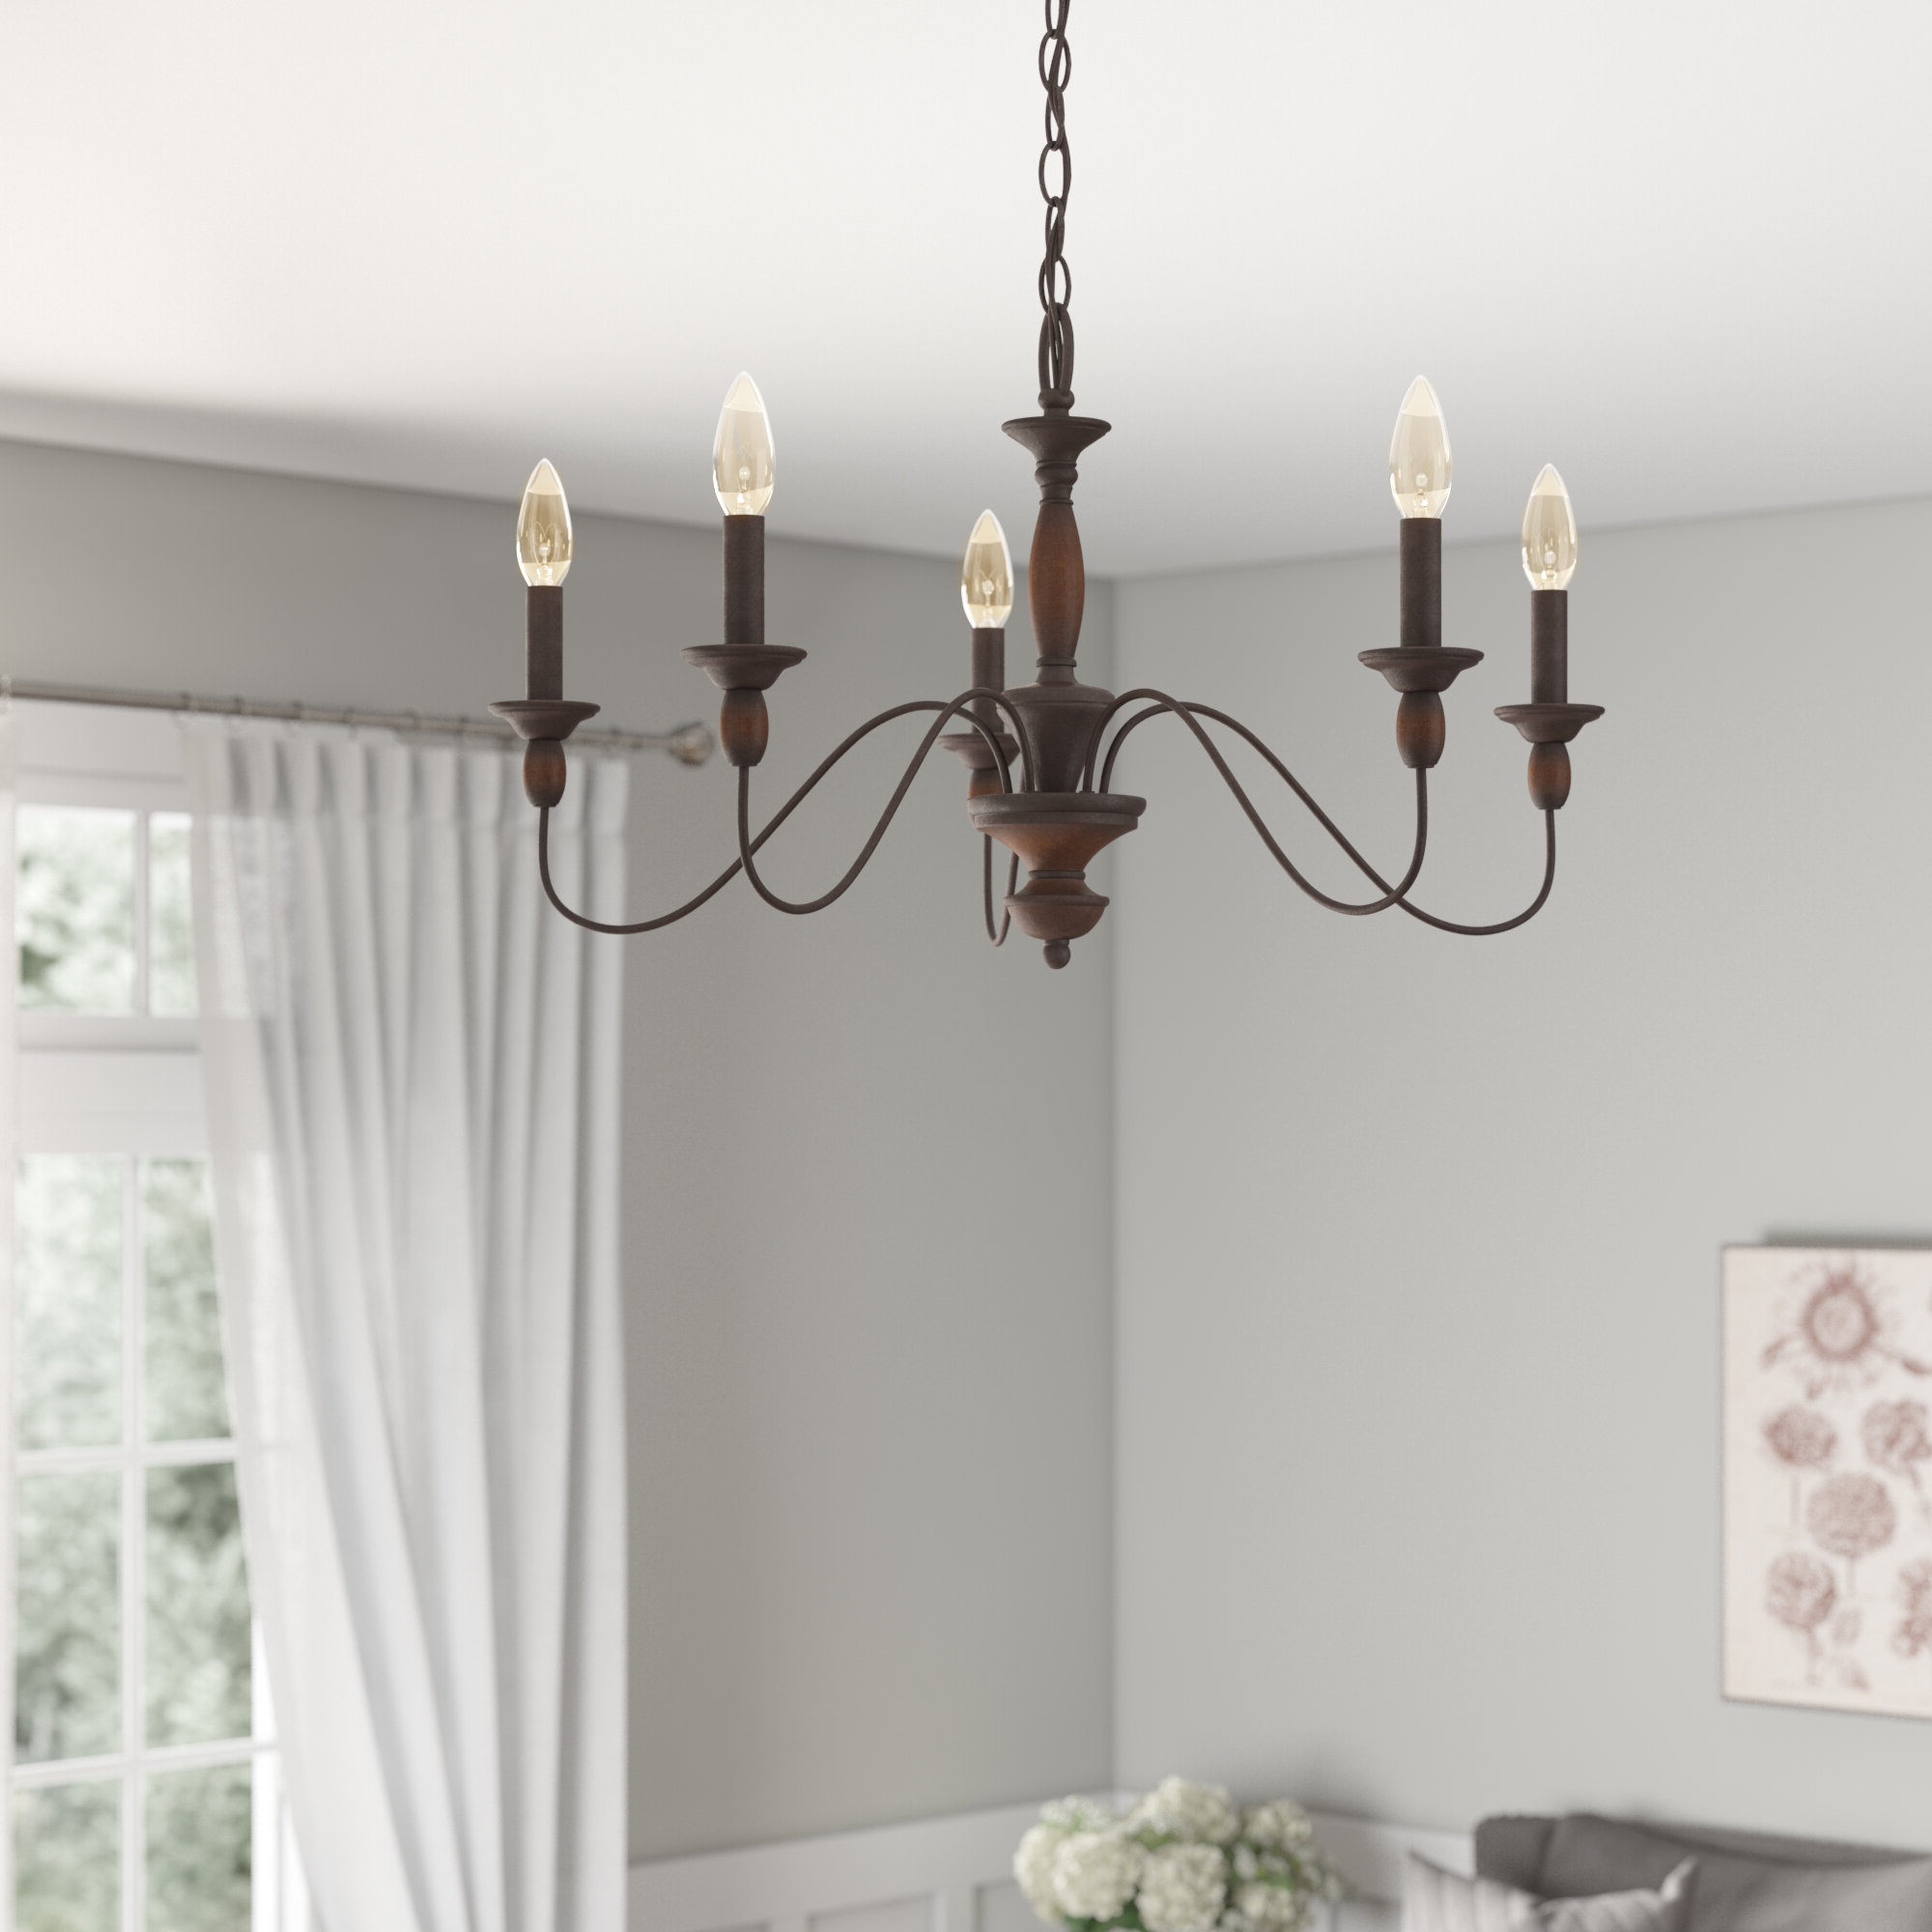 Shaylee 5 Light Candle Style Chandeliers Intended For Most Recently Released Sarah 5 Light Candle Style Chandelier (View 20 of 20)